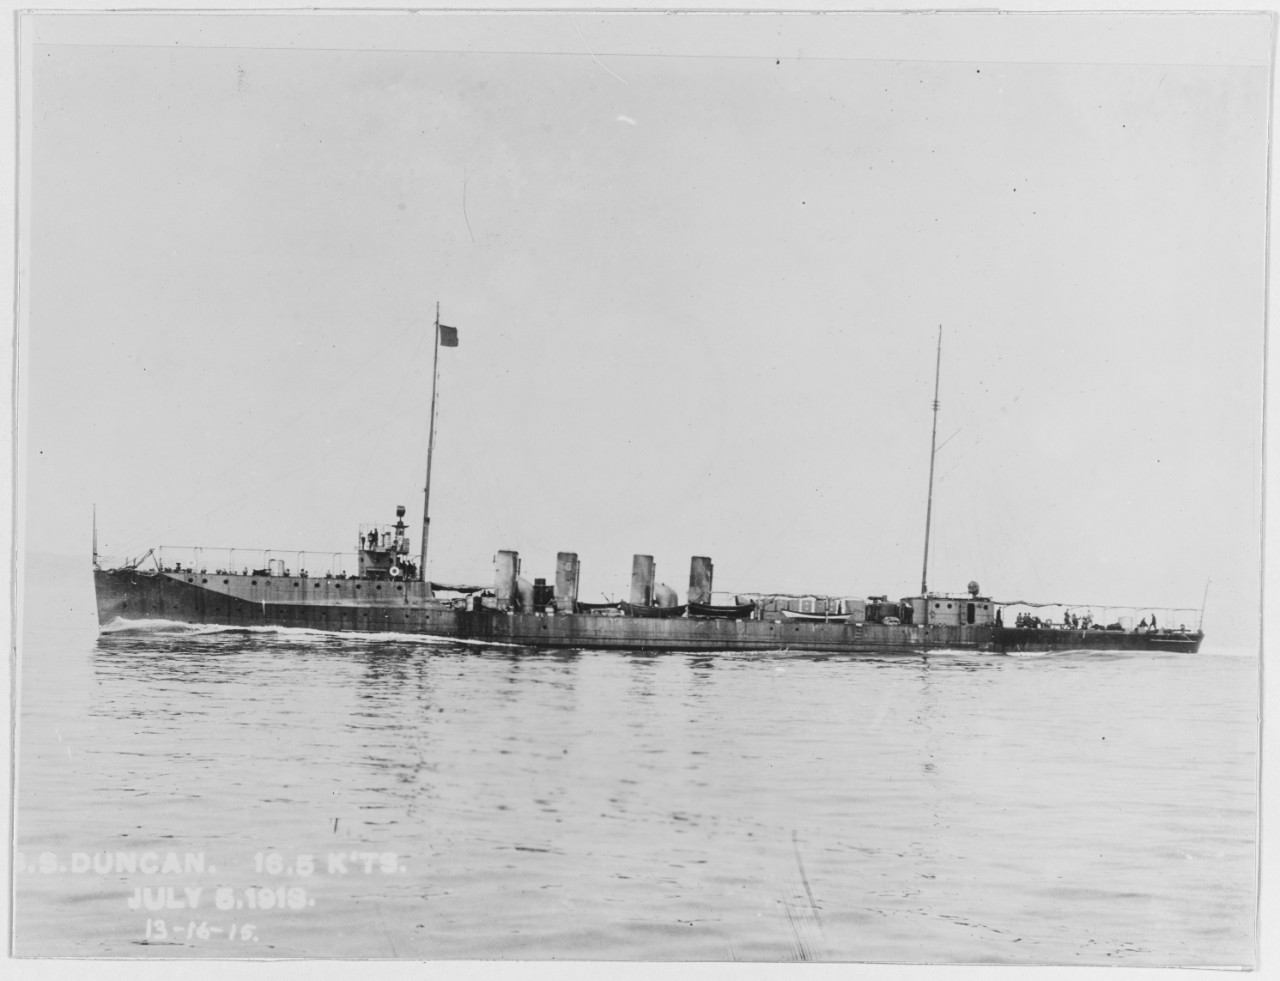 Duncan, prior to installation of armament, making 16.5 knots while running trials, 5 July 1913. (Naval History and Heritage Command Photograph NH 54578)